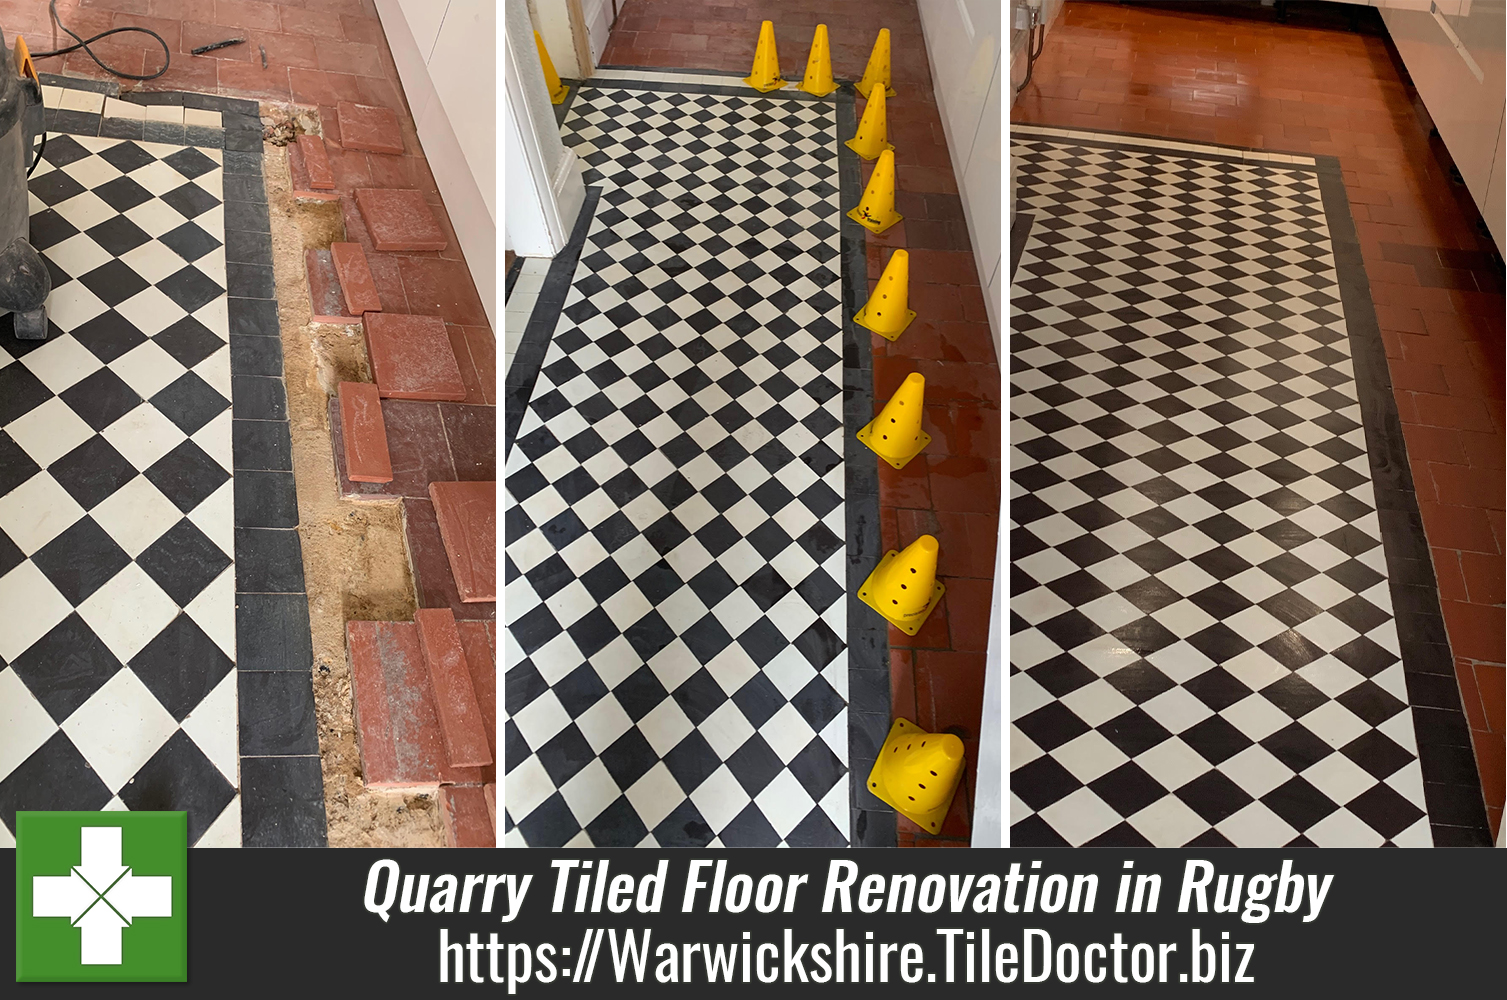 Quarry Tiled Floor Layout Altered and Renovated in Rugby